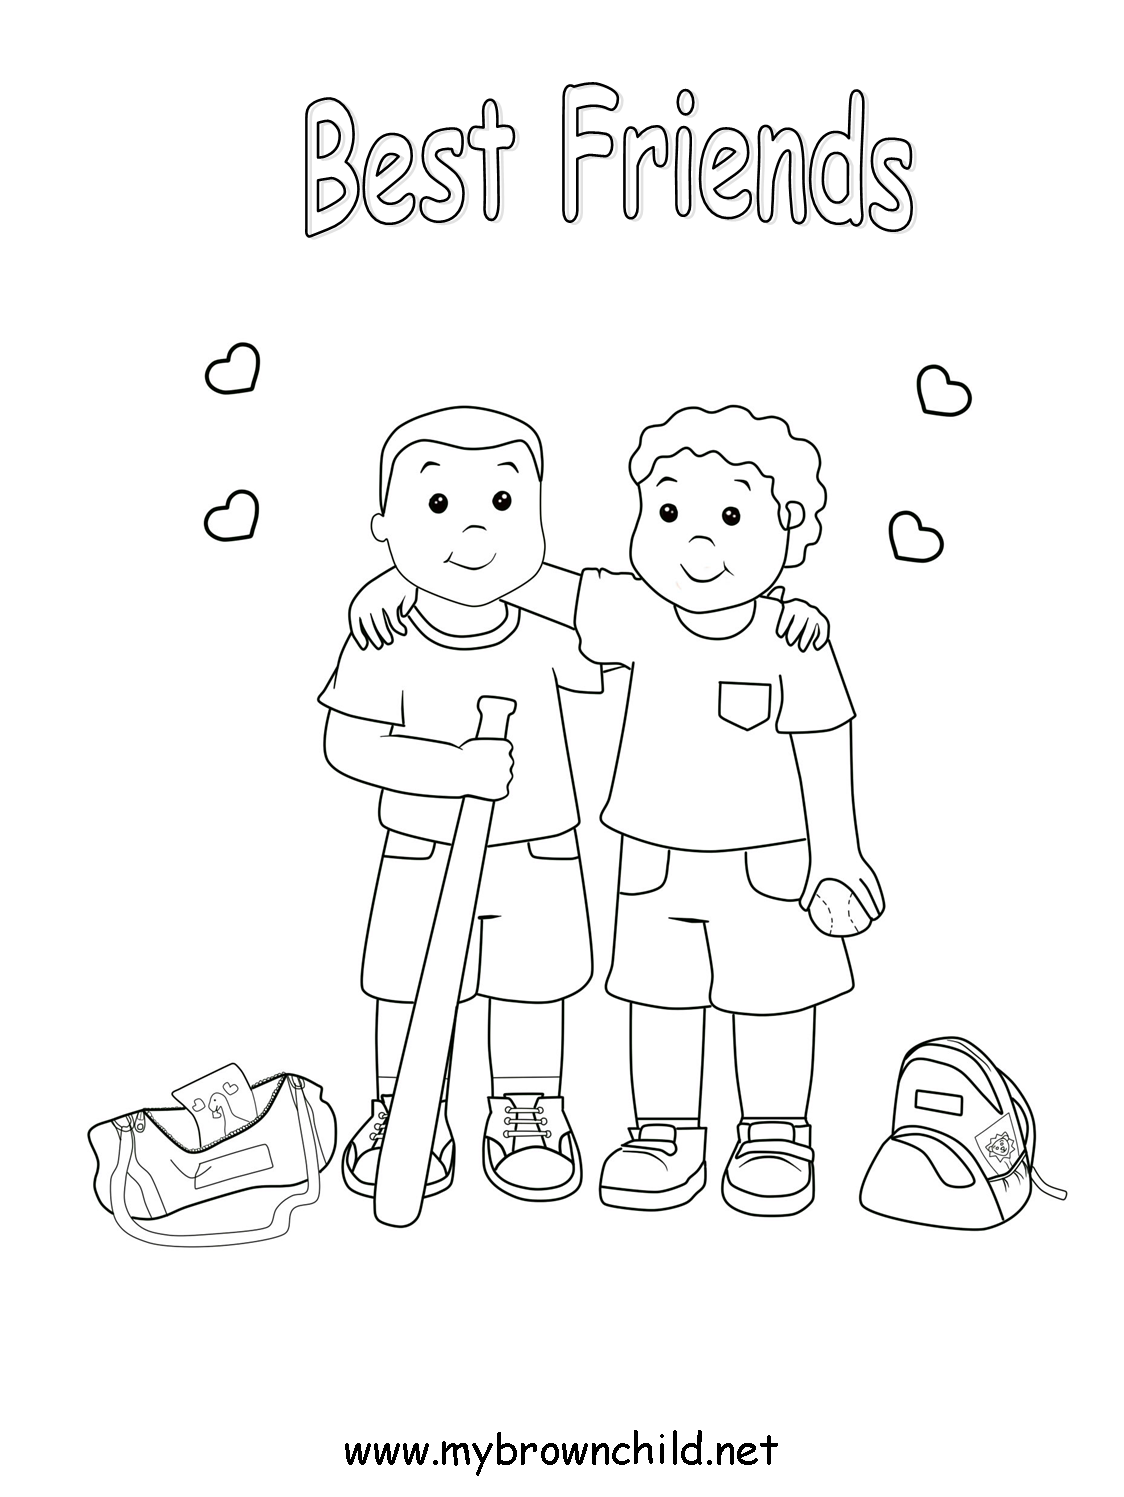 Free Coloring Pages for Children of Color (non-commercial) |